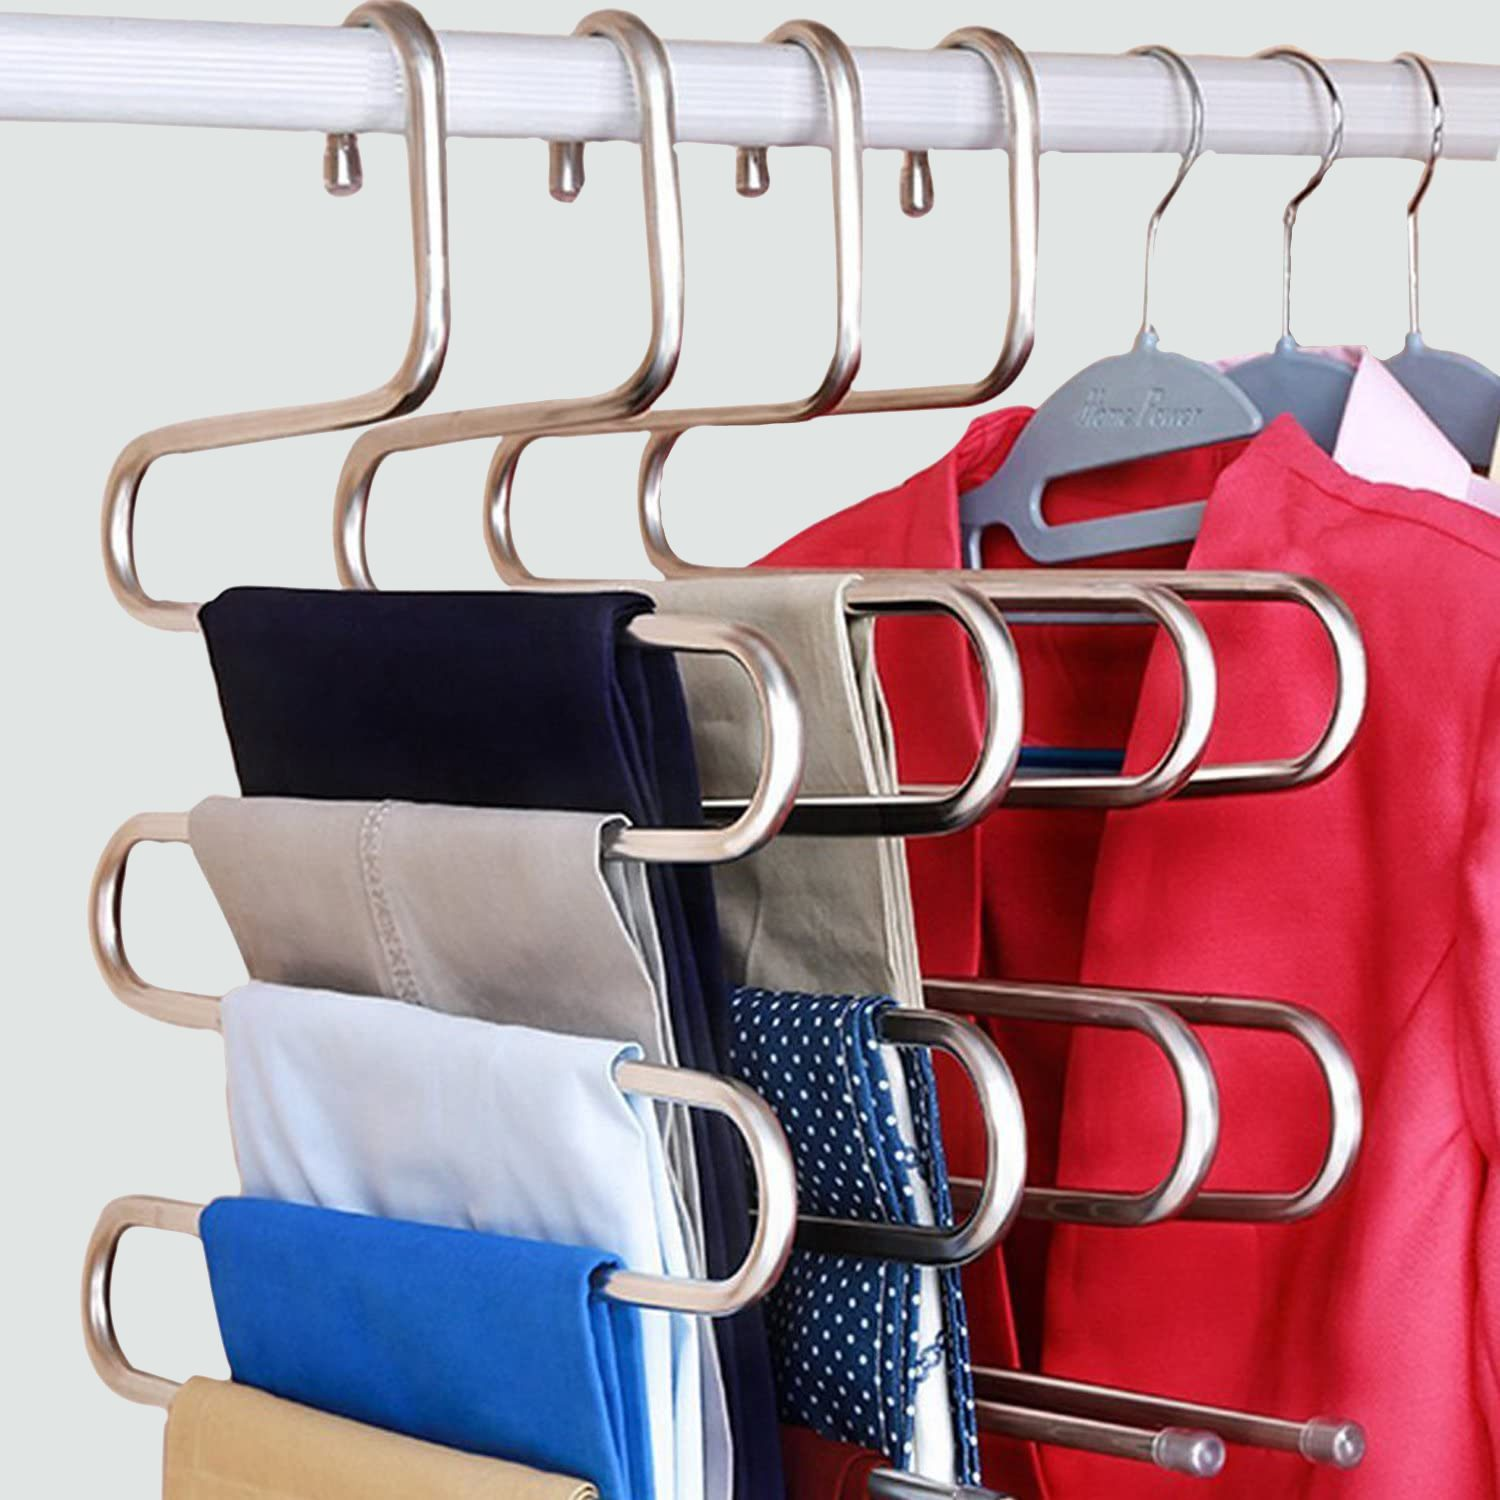 Doiown tiered hangers